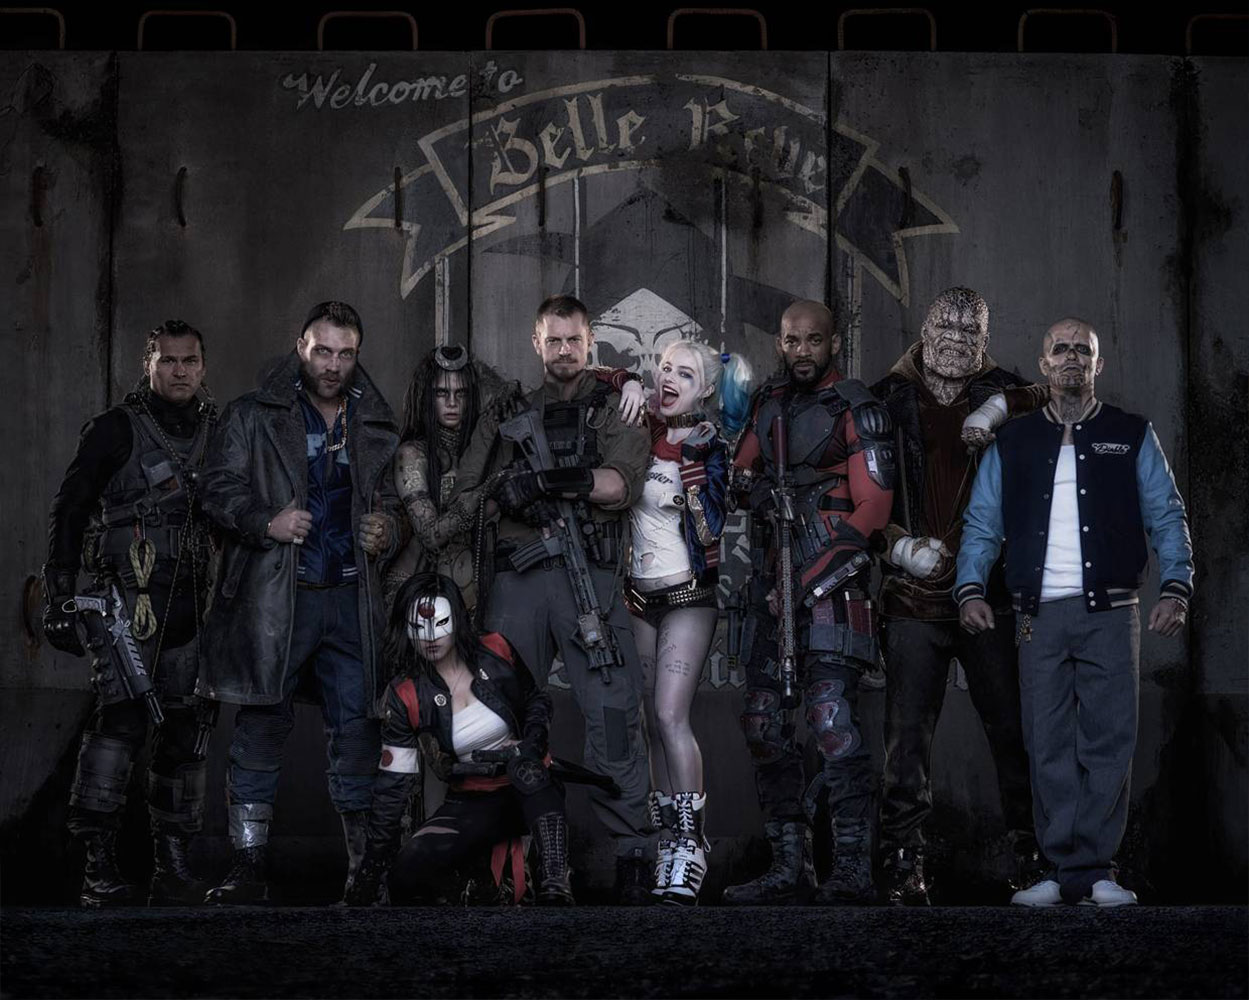 http://www.suicidesquad.com/assets/images/gallery/13.jpg